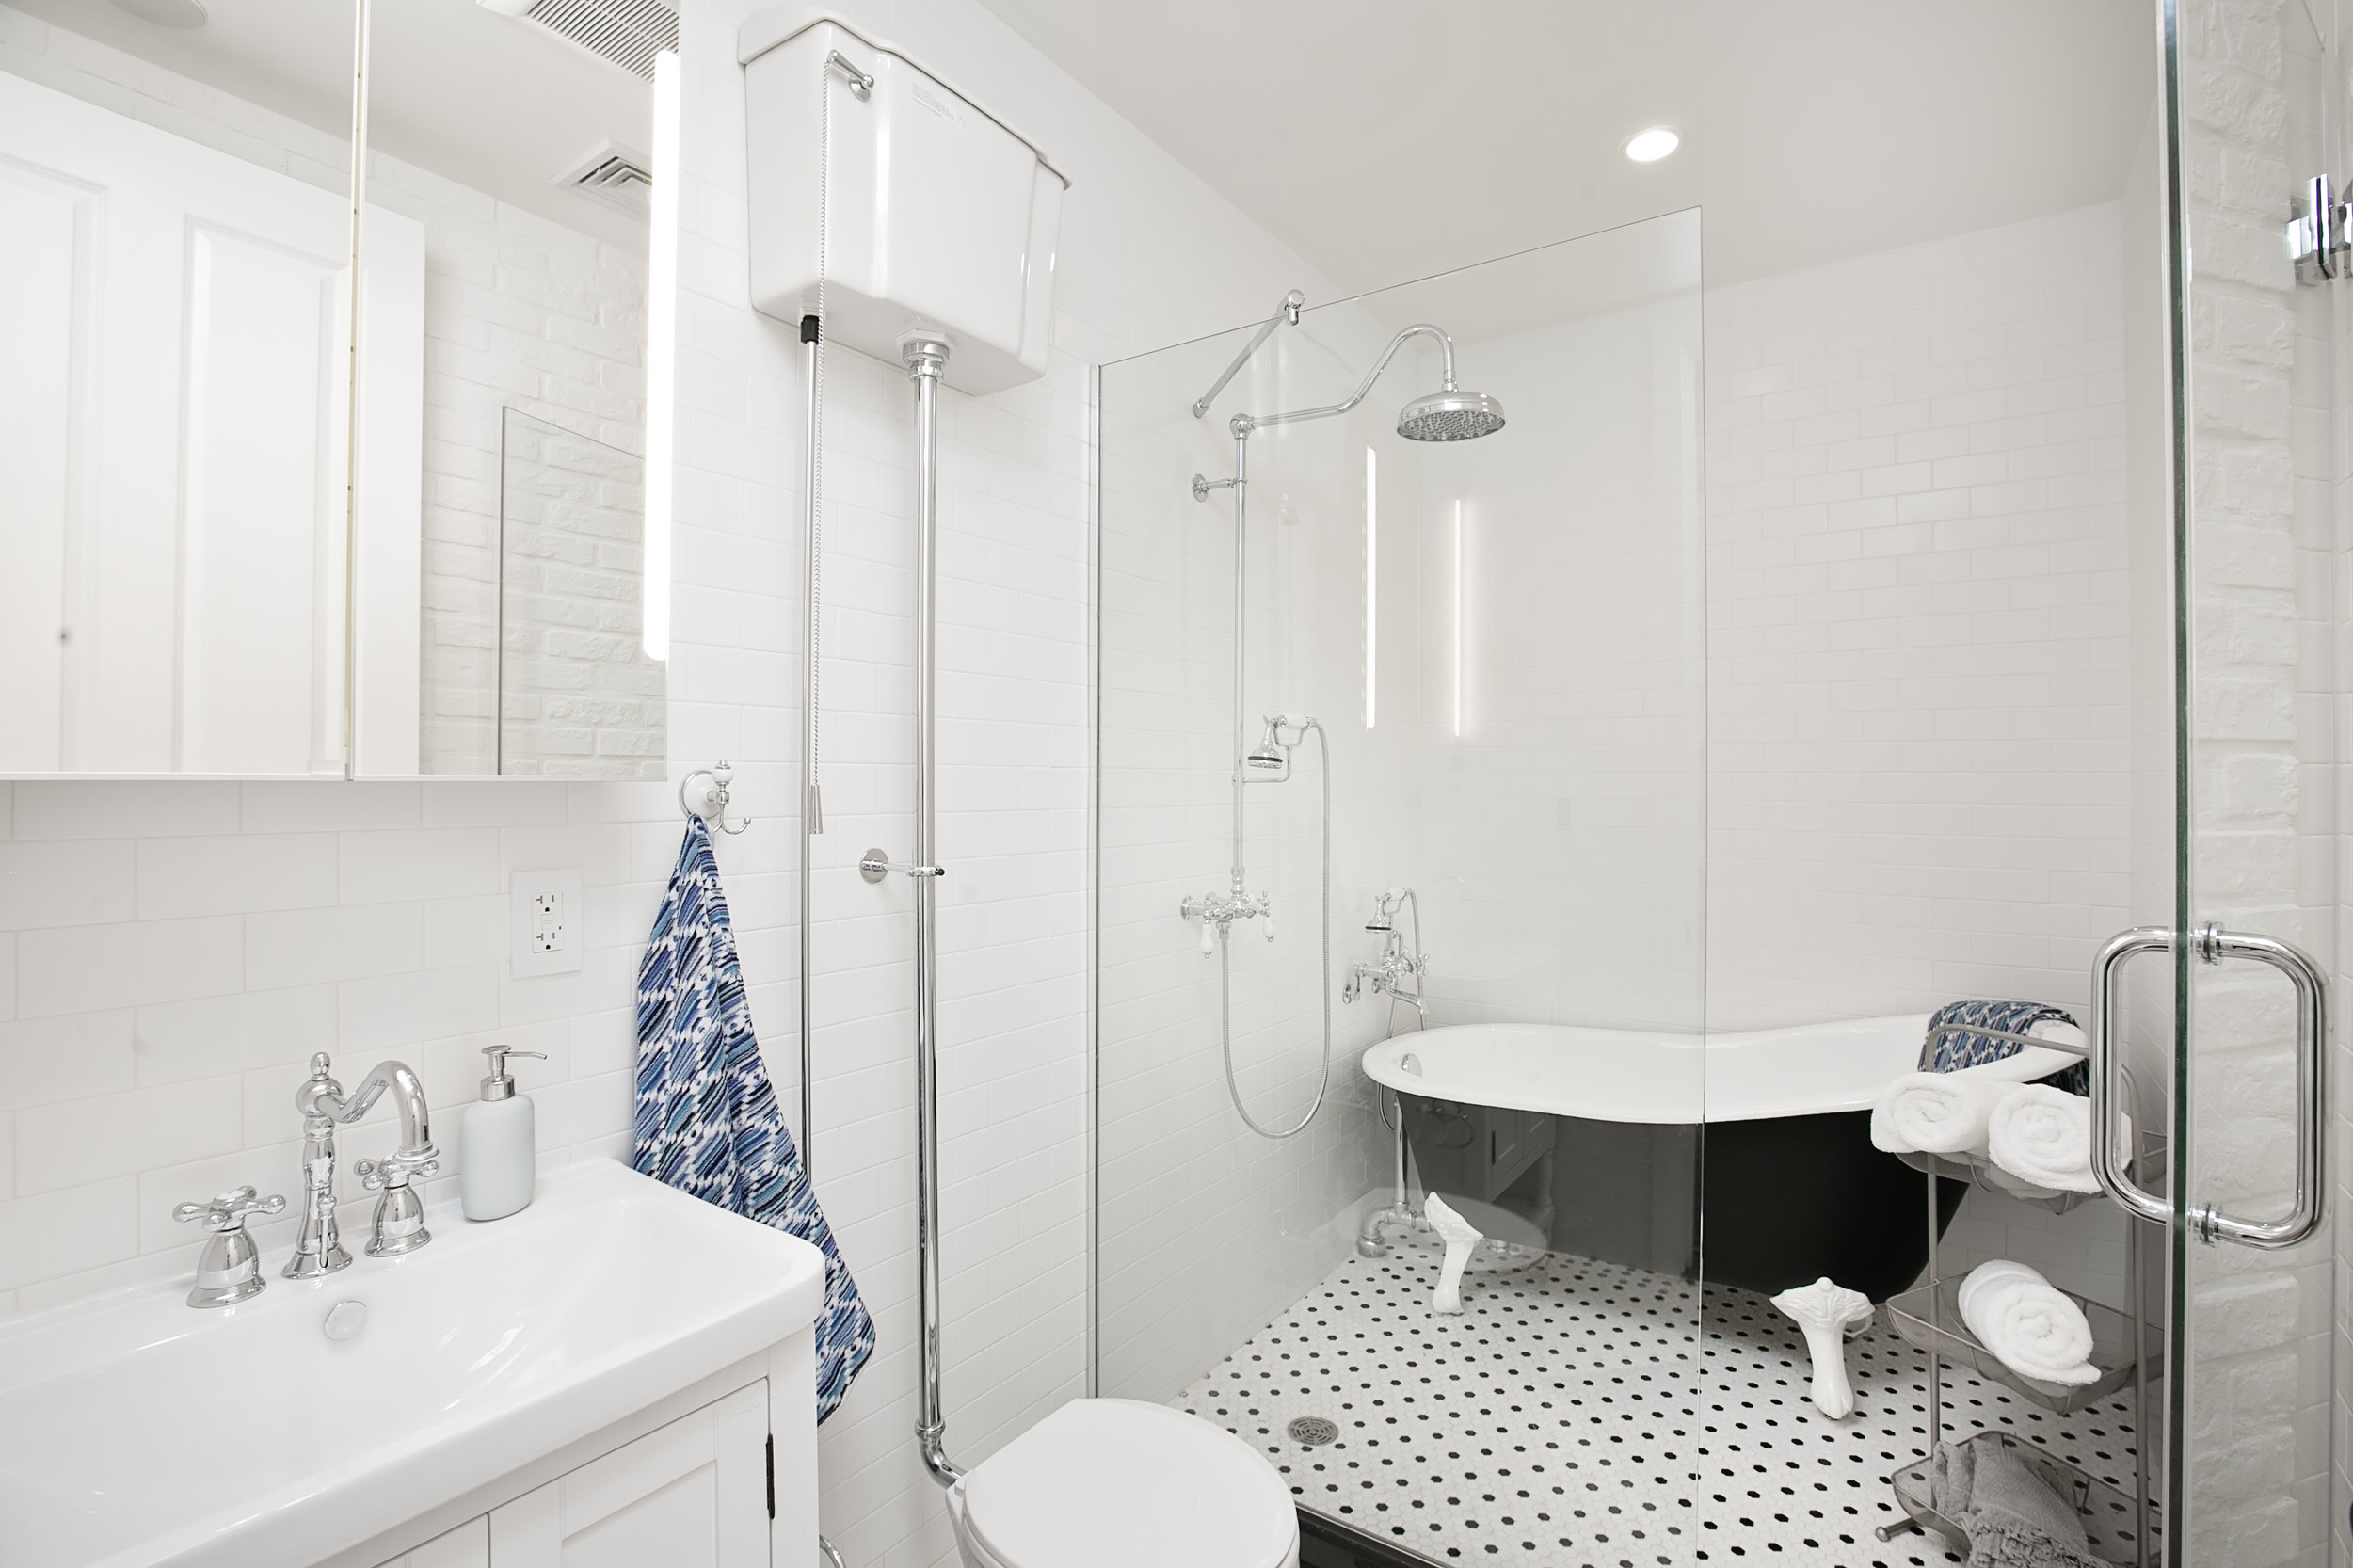 THE BATHROOM - Vintage, but modern!